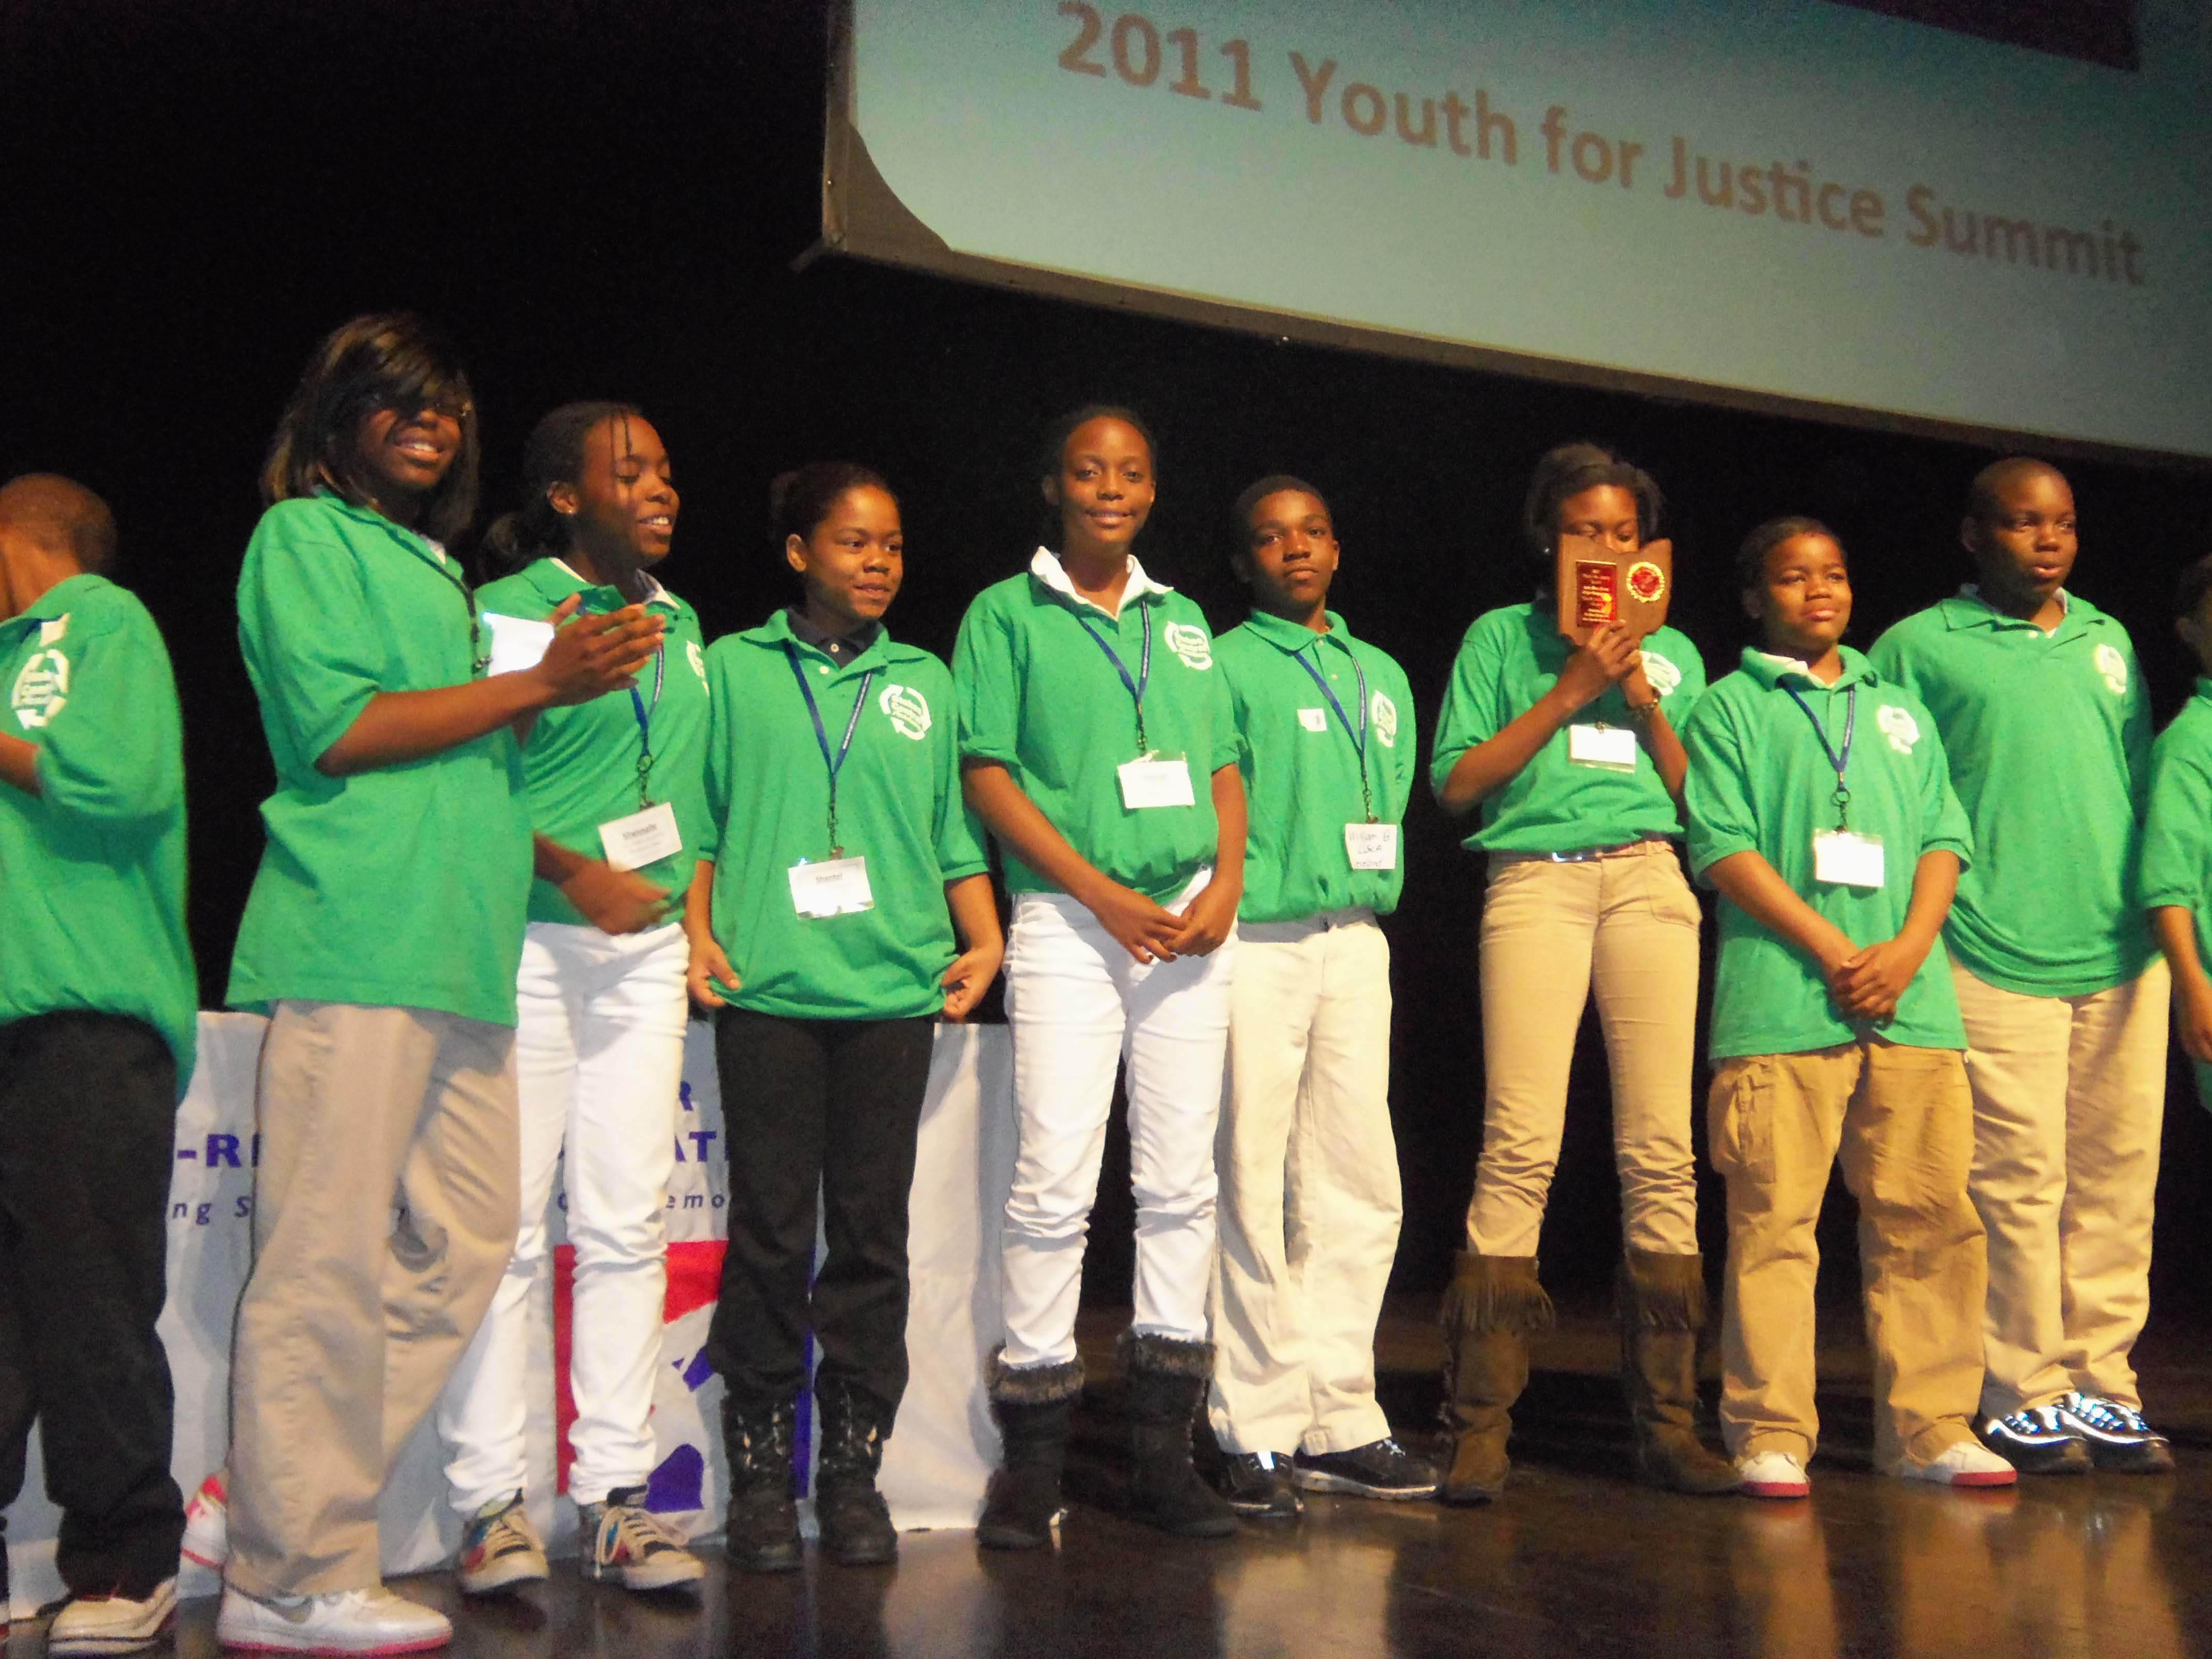 Youth Justice Summit